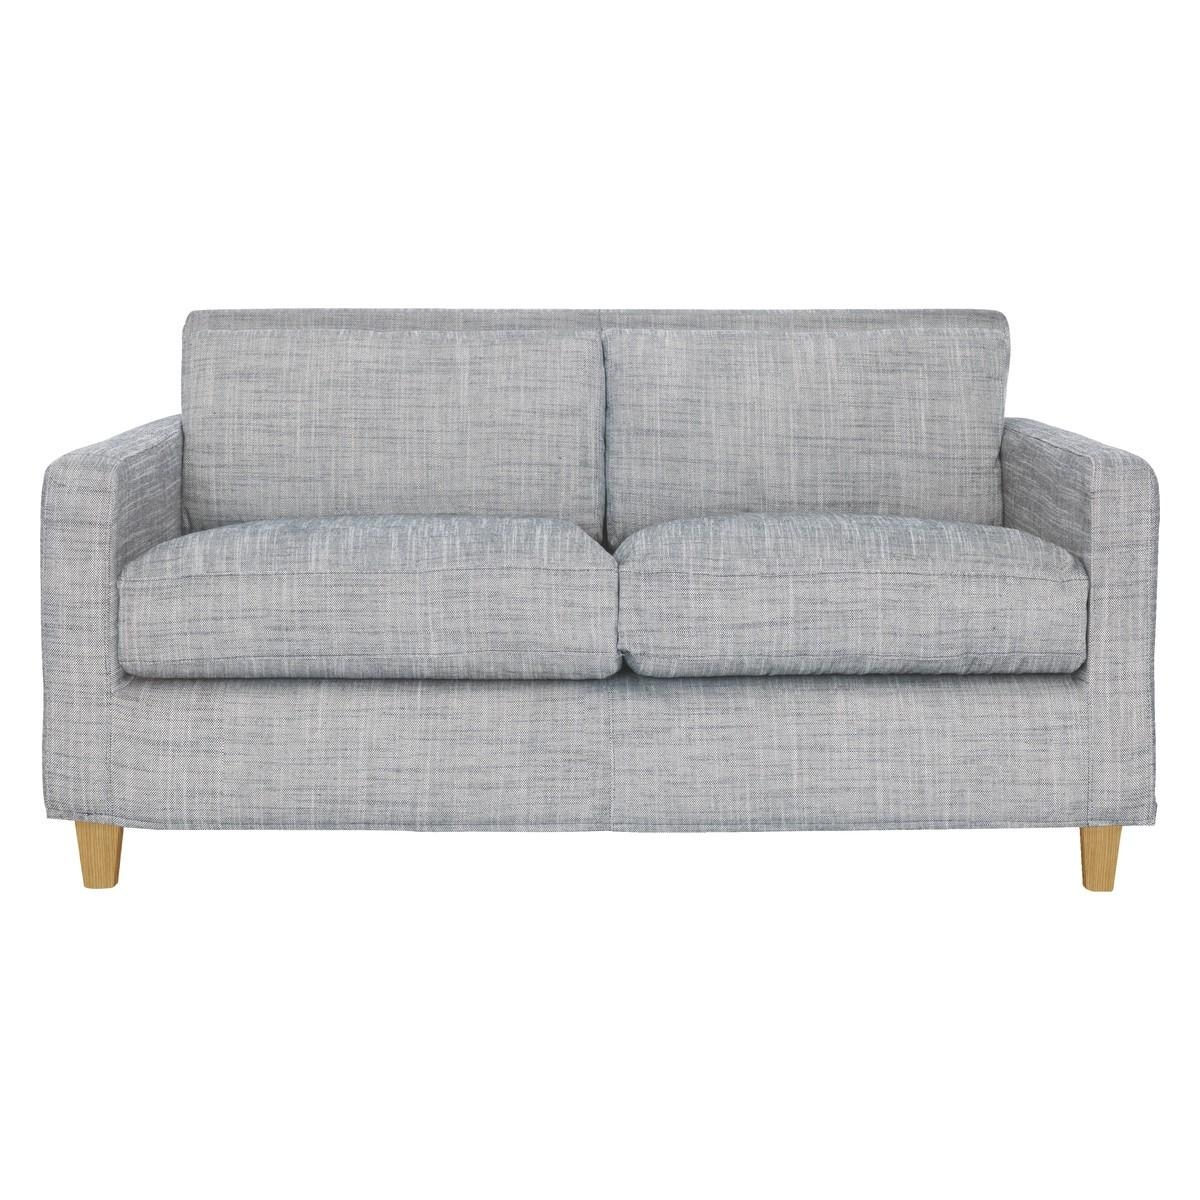 Chester Black & White Italian Woven Fabric 2 Seater Sofa, Oak In 2 Seater Sofas (Image 7 of 20)